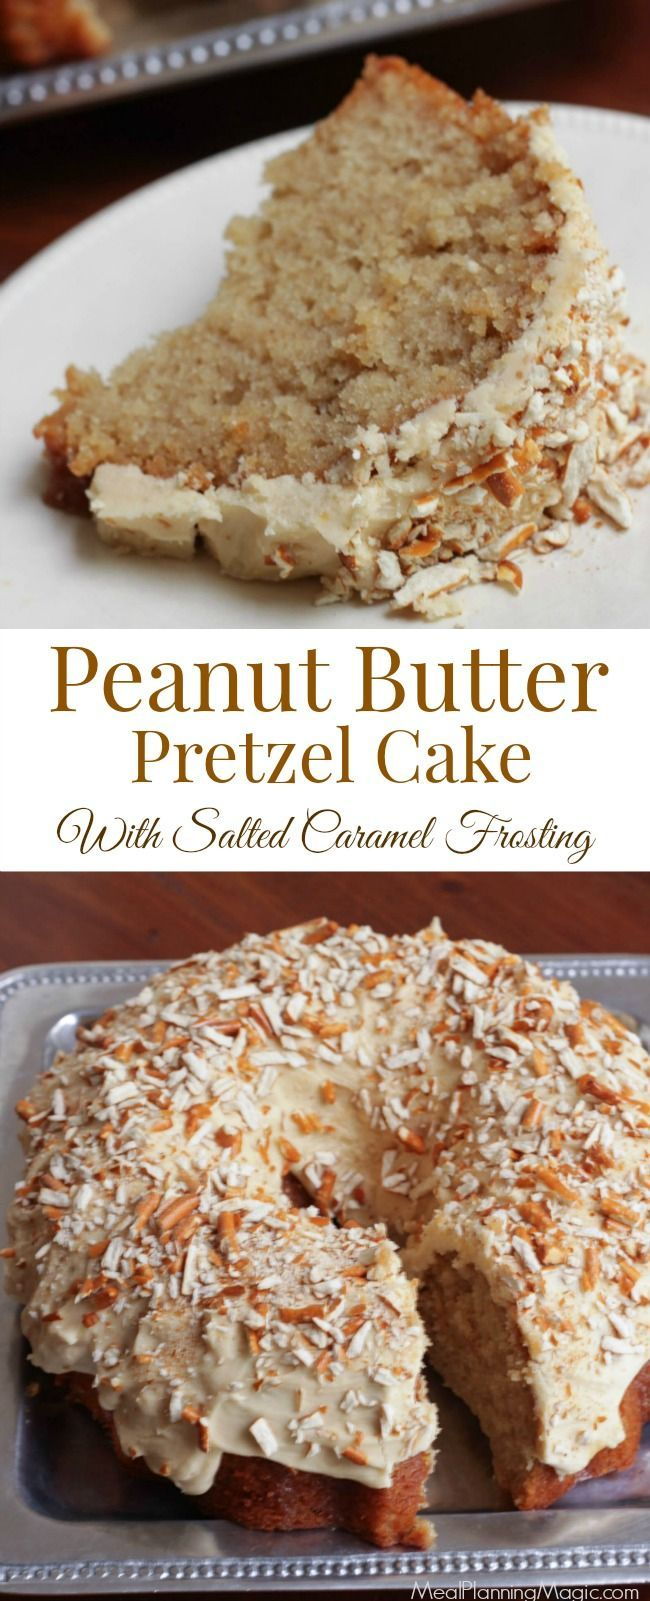 This Peanut Butter Pretzel Cake is filled with Salted Caramel Syrup and topped off with creamy Salted Caramel Frosting the sprinkled with crushed pretzels. And each step can be made ahead--making it a perfect peanut butter lover's cake if you ask me! #Wee